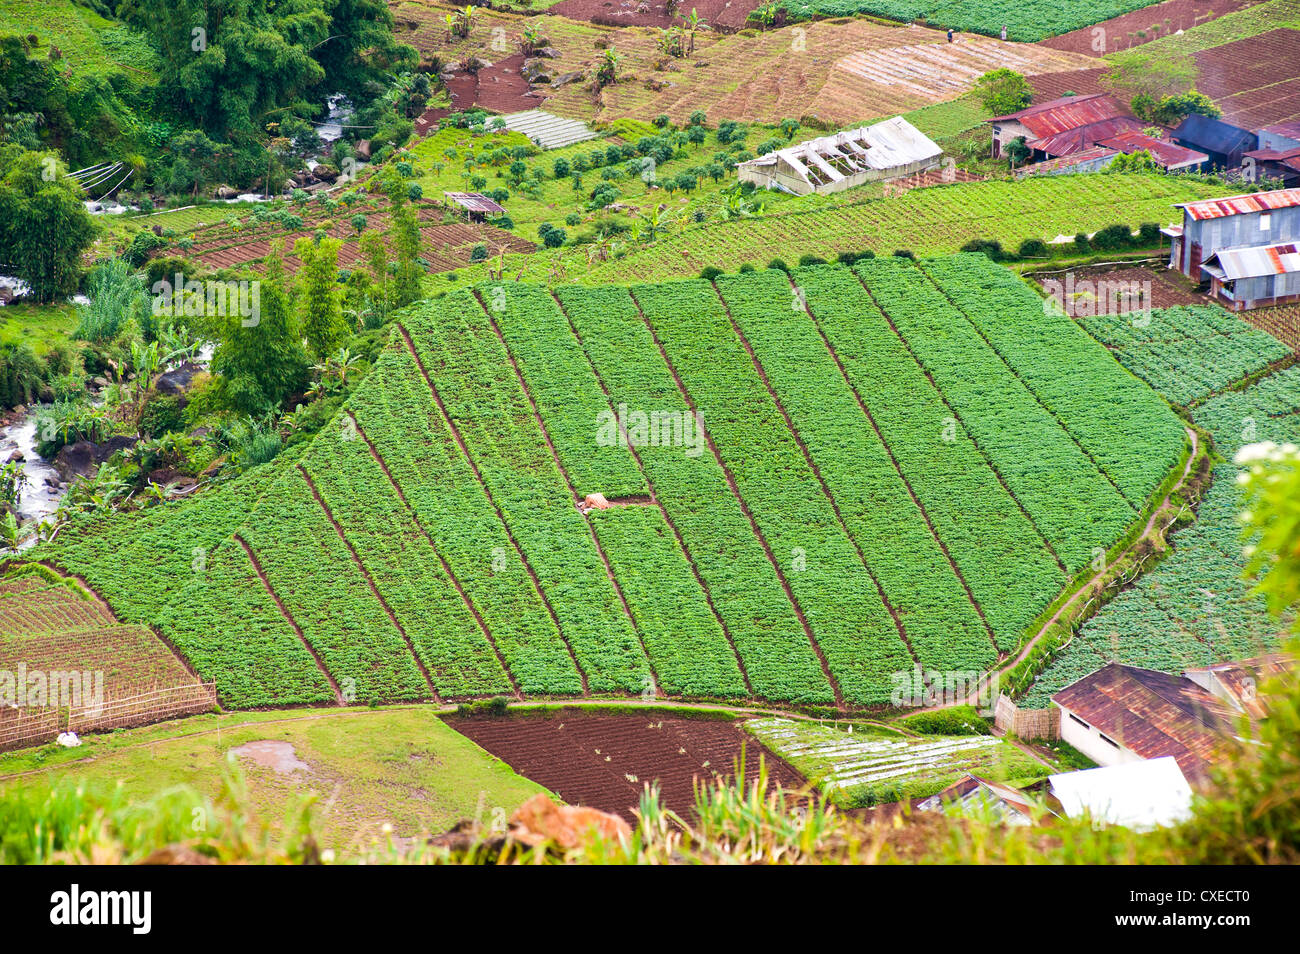 Aerial phot of vegetable fields at Wonosobo, Dieng Plateau, Central Java, Indonesia, Southeast Asia, Asia - Stock Image